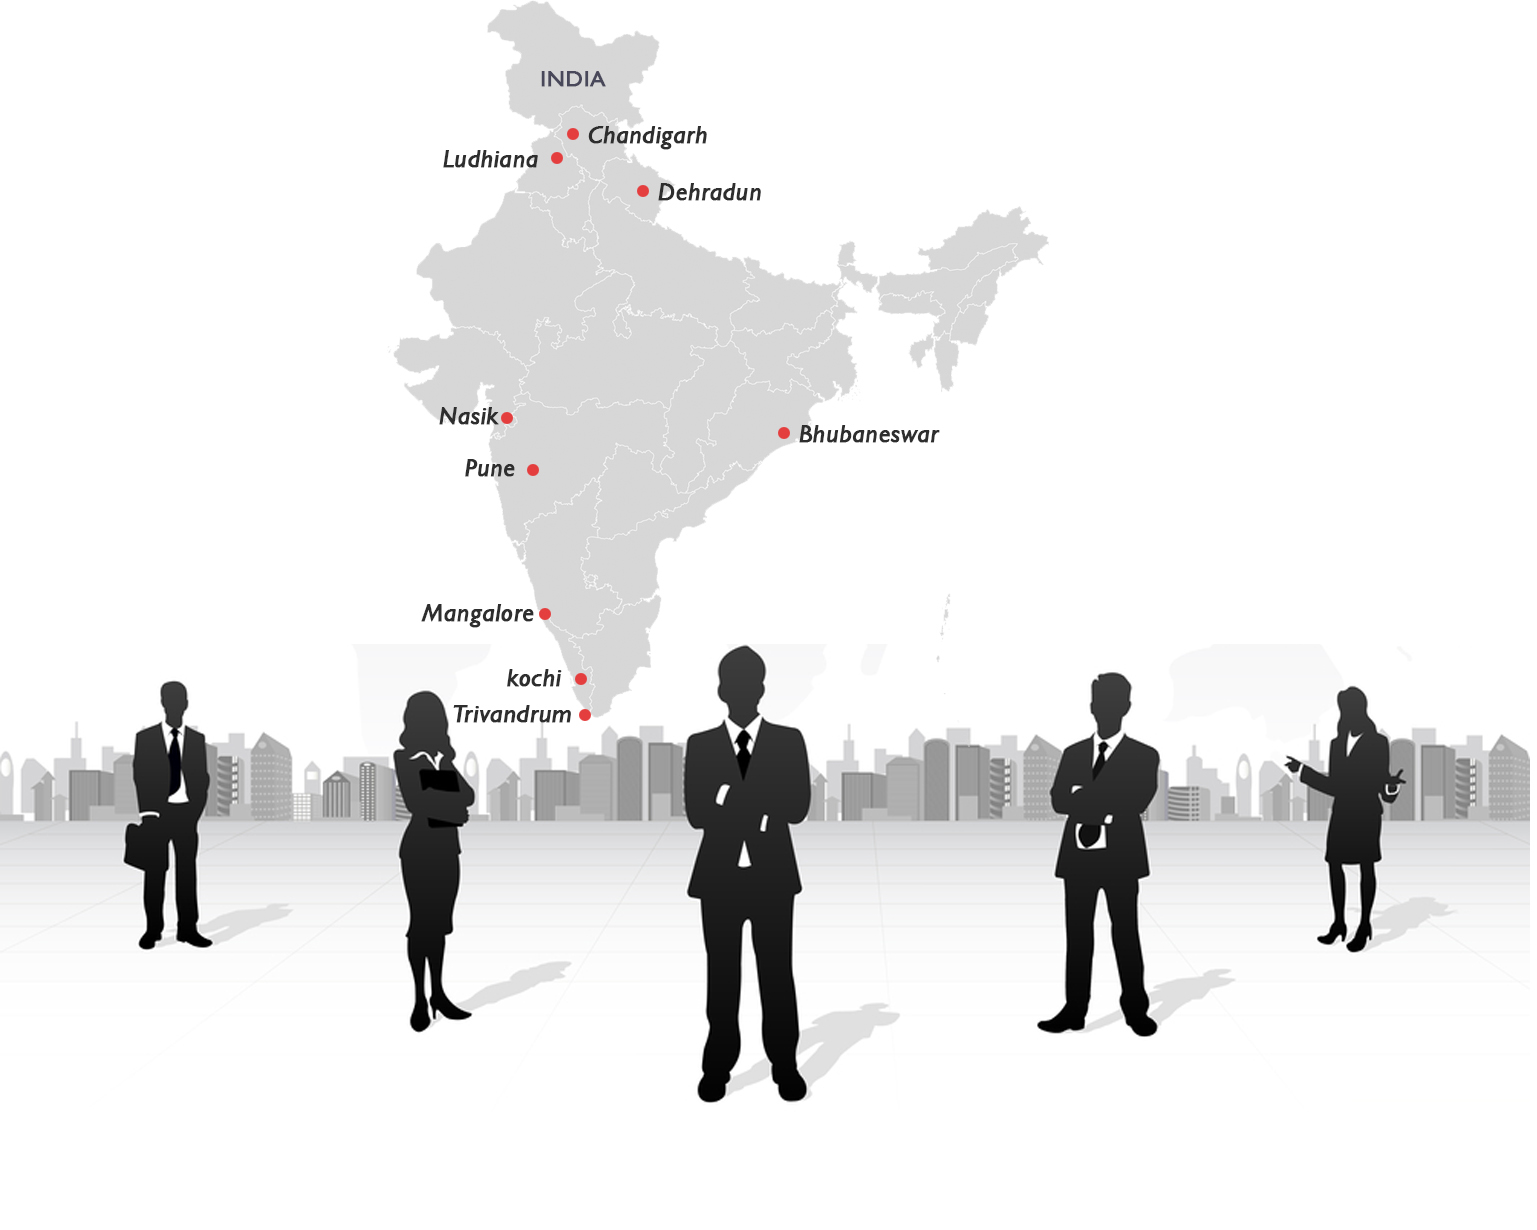 How to save money by outsourcing to Tier 2 CITIES in India?